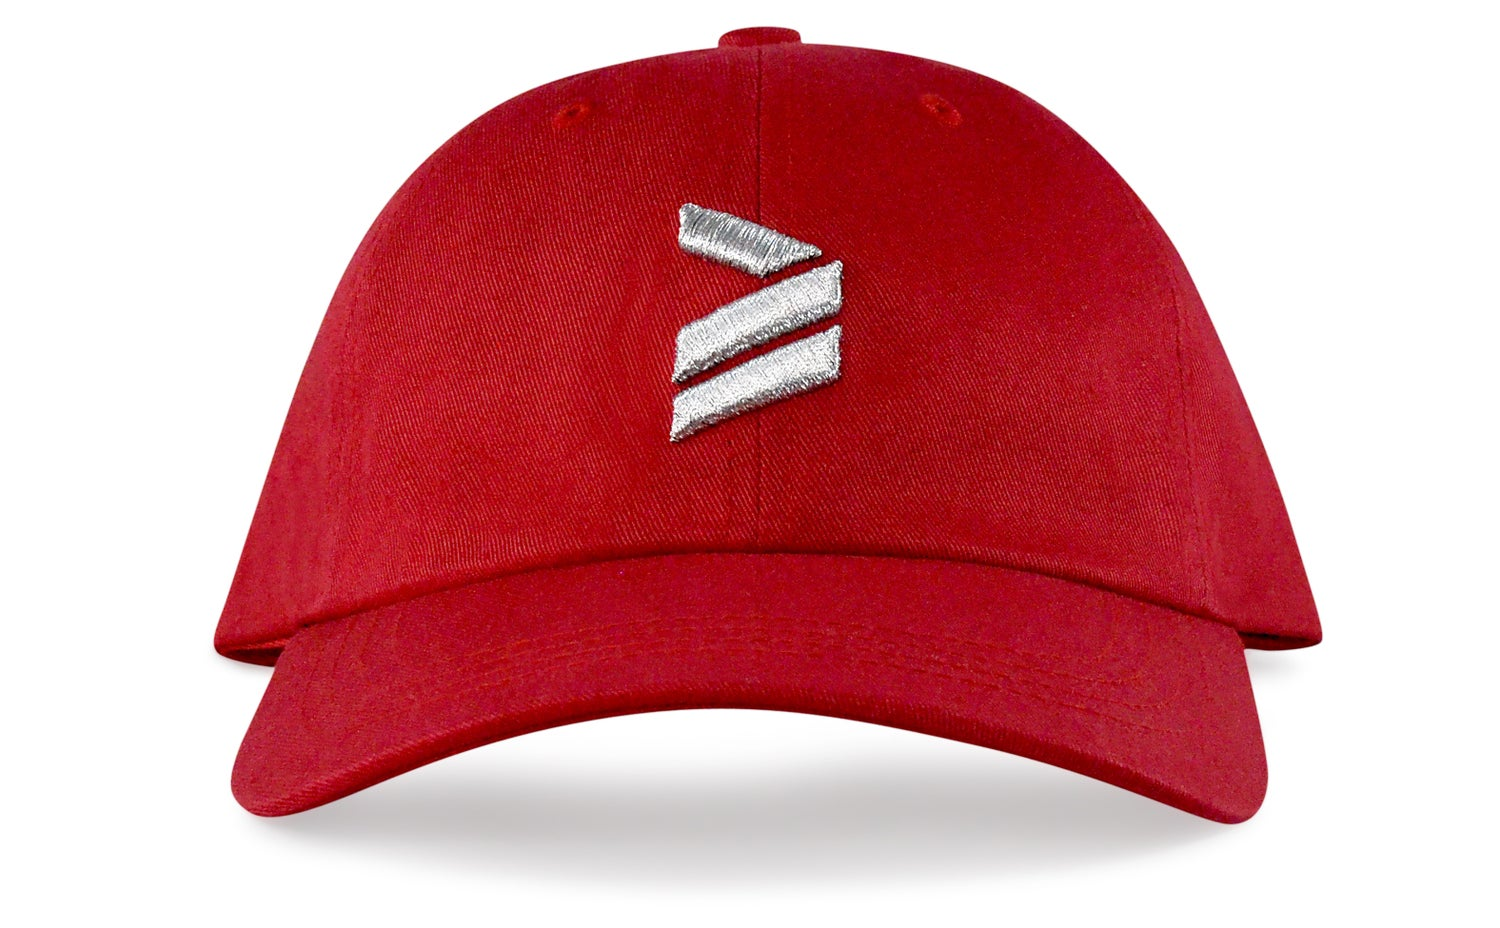 Image of ICON LOGO - 3D (RED/METALLIC SILVER) - DAD HAT